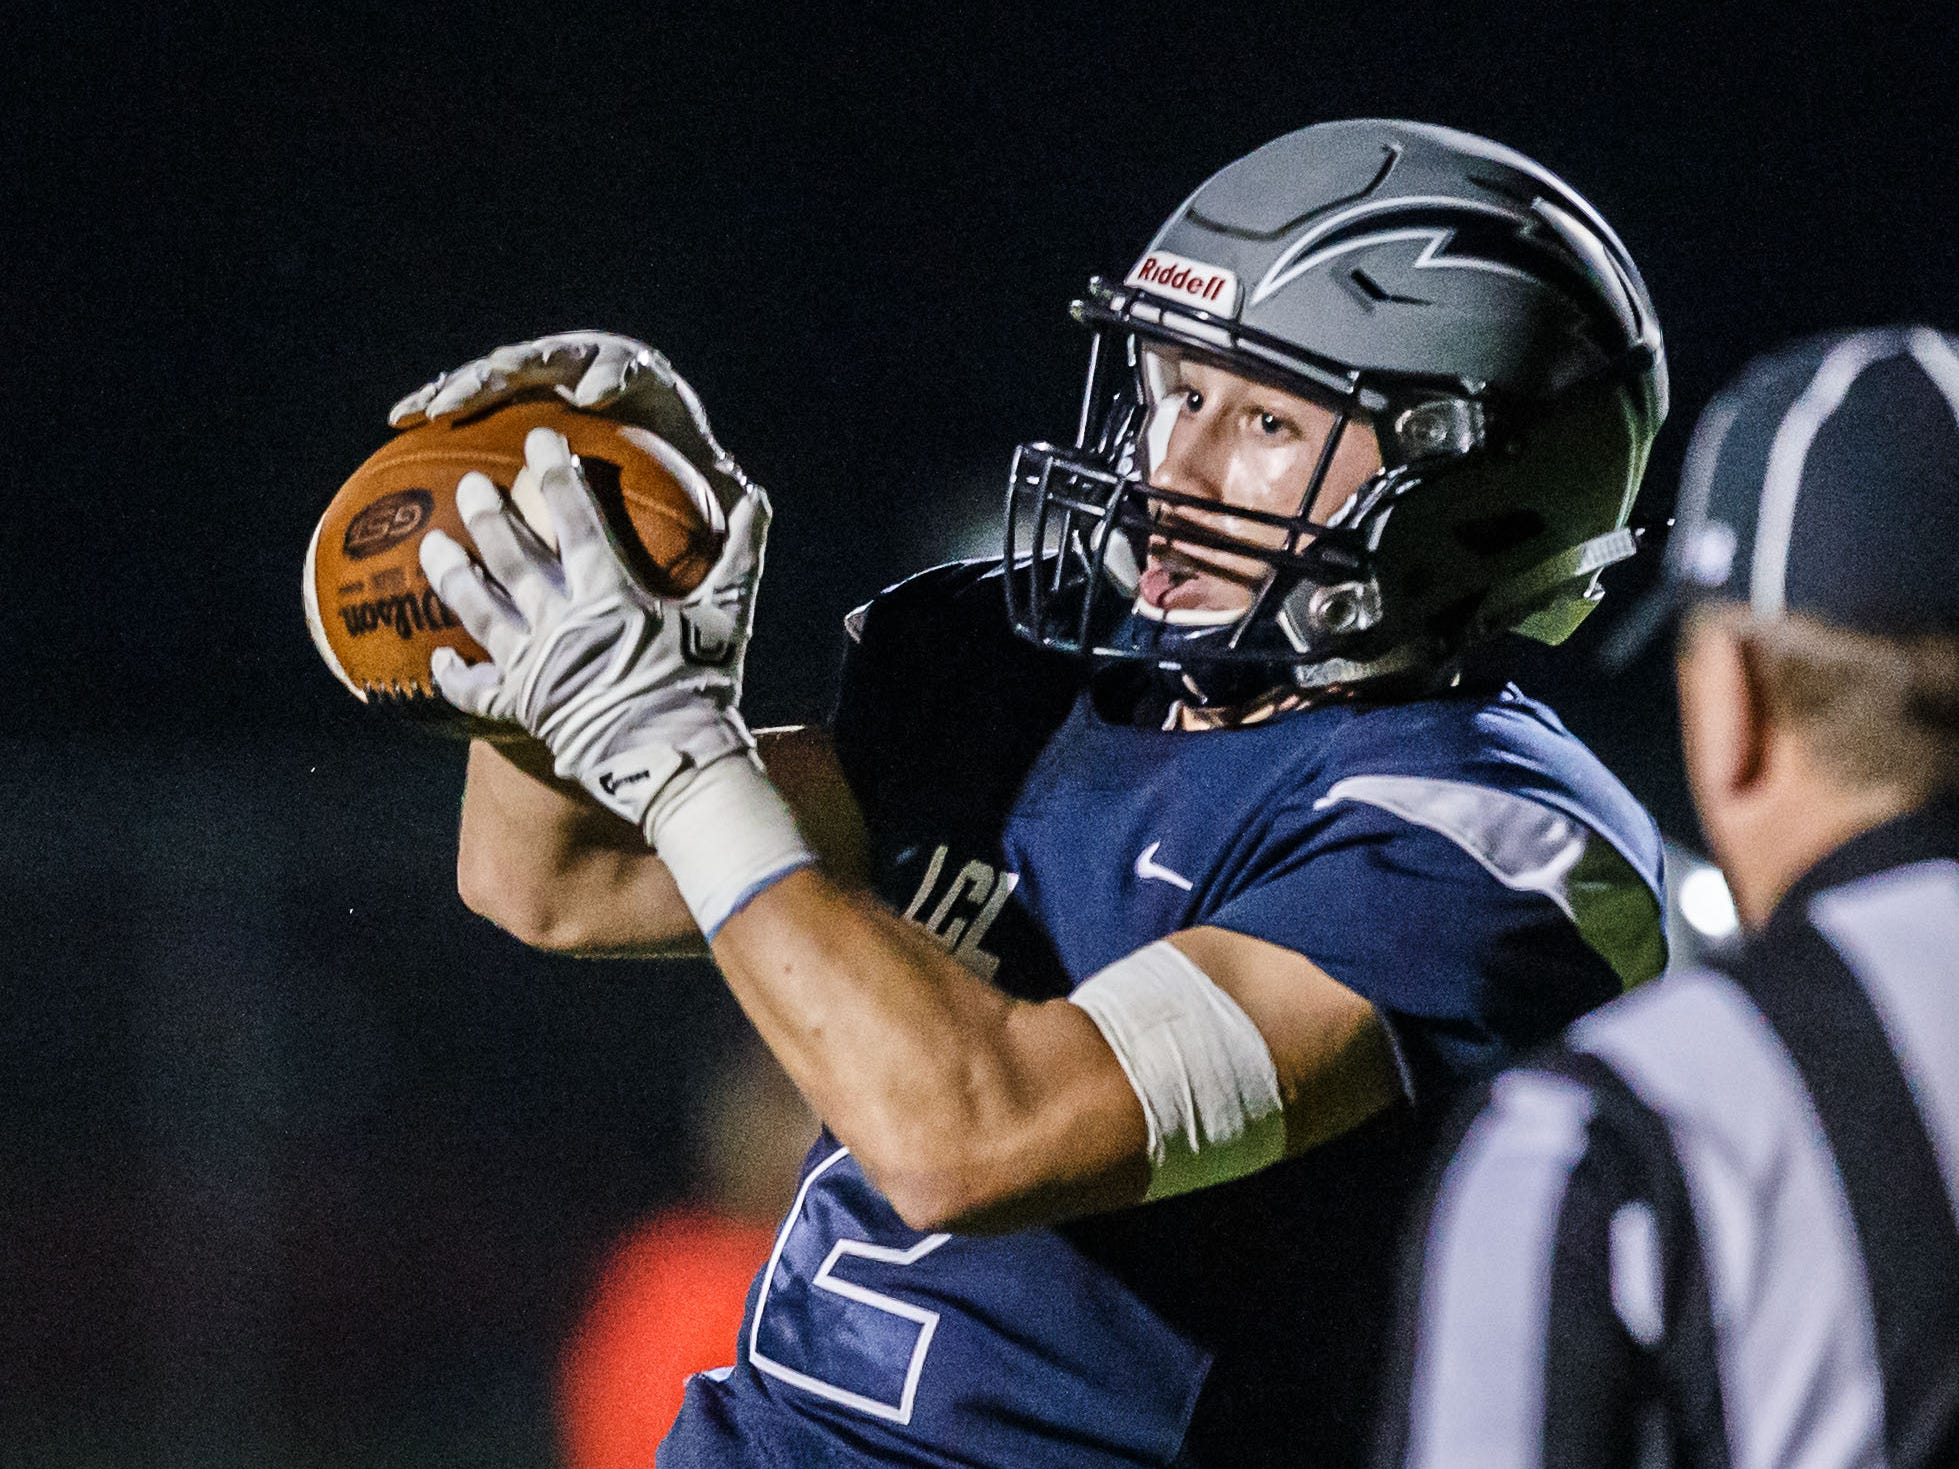 Lake Country Lutheran wide receiver Will Brazgel (2) pulls down a pass in the end zone during the game at home against University School of Milwaukee on Thursday, Sept. 13, 2018.